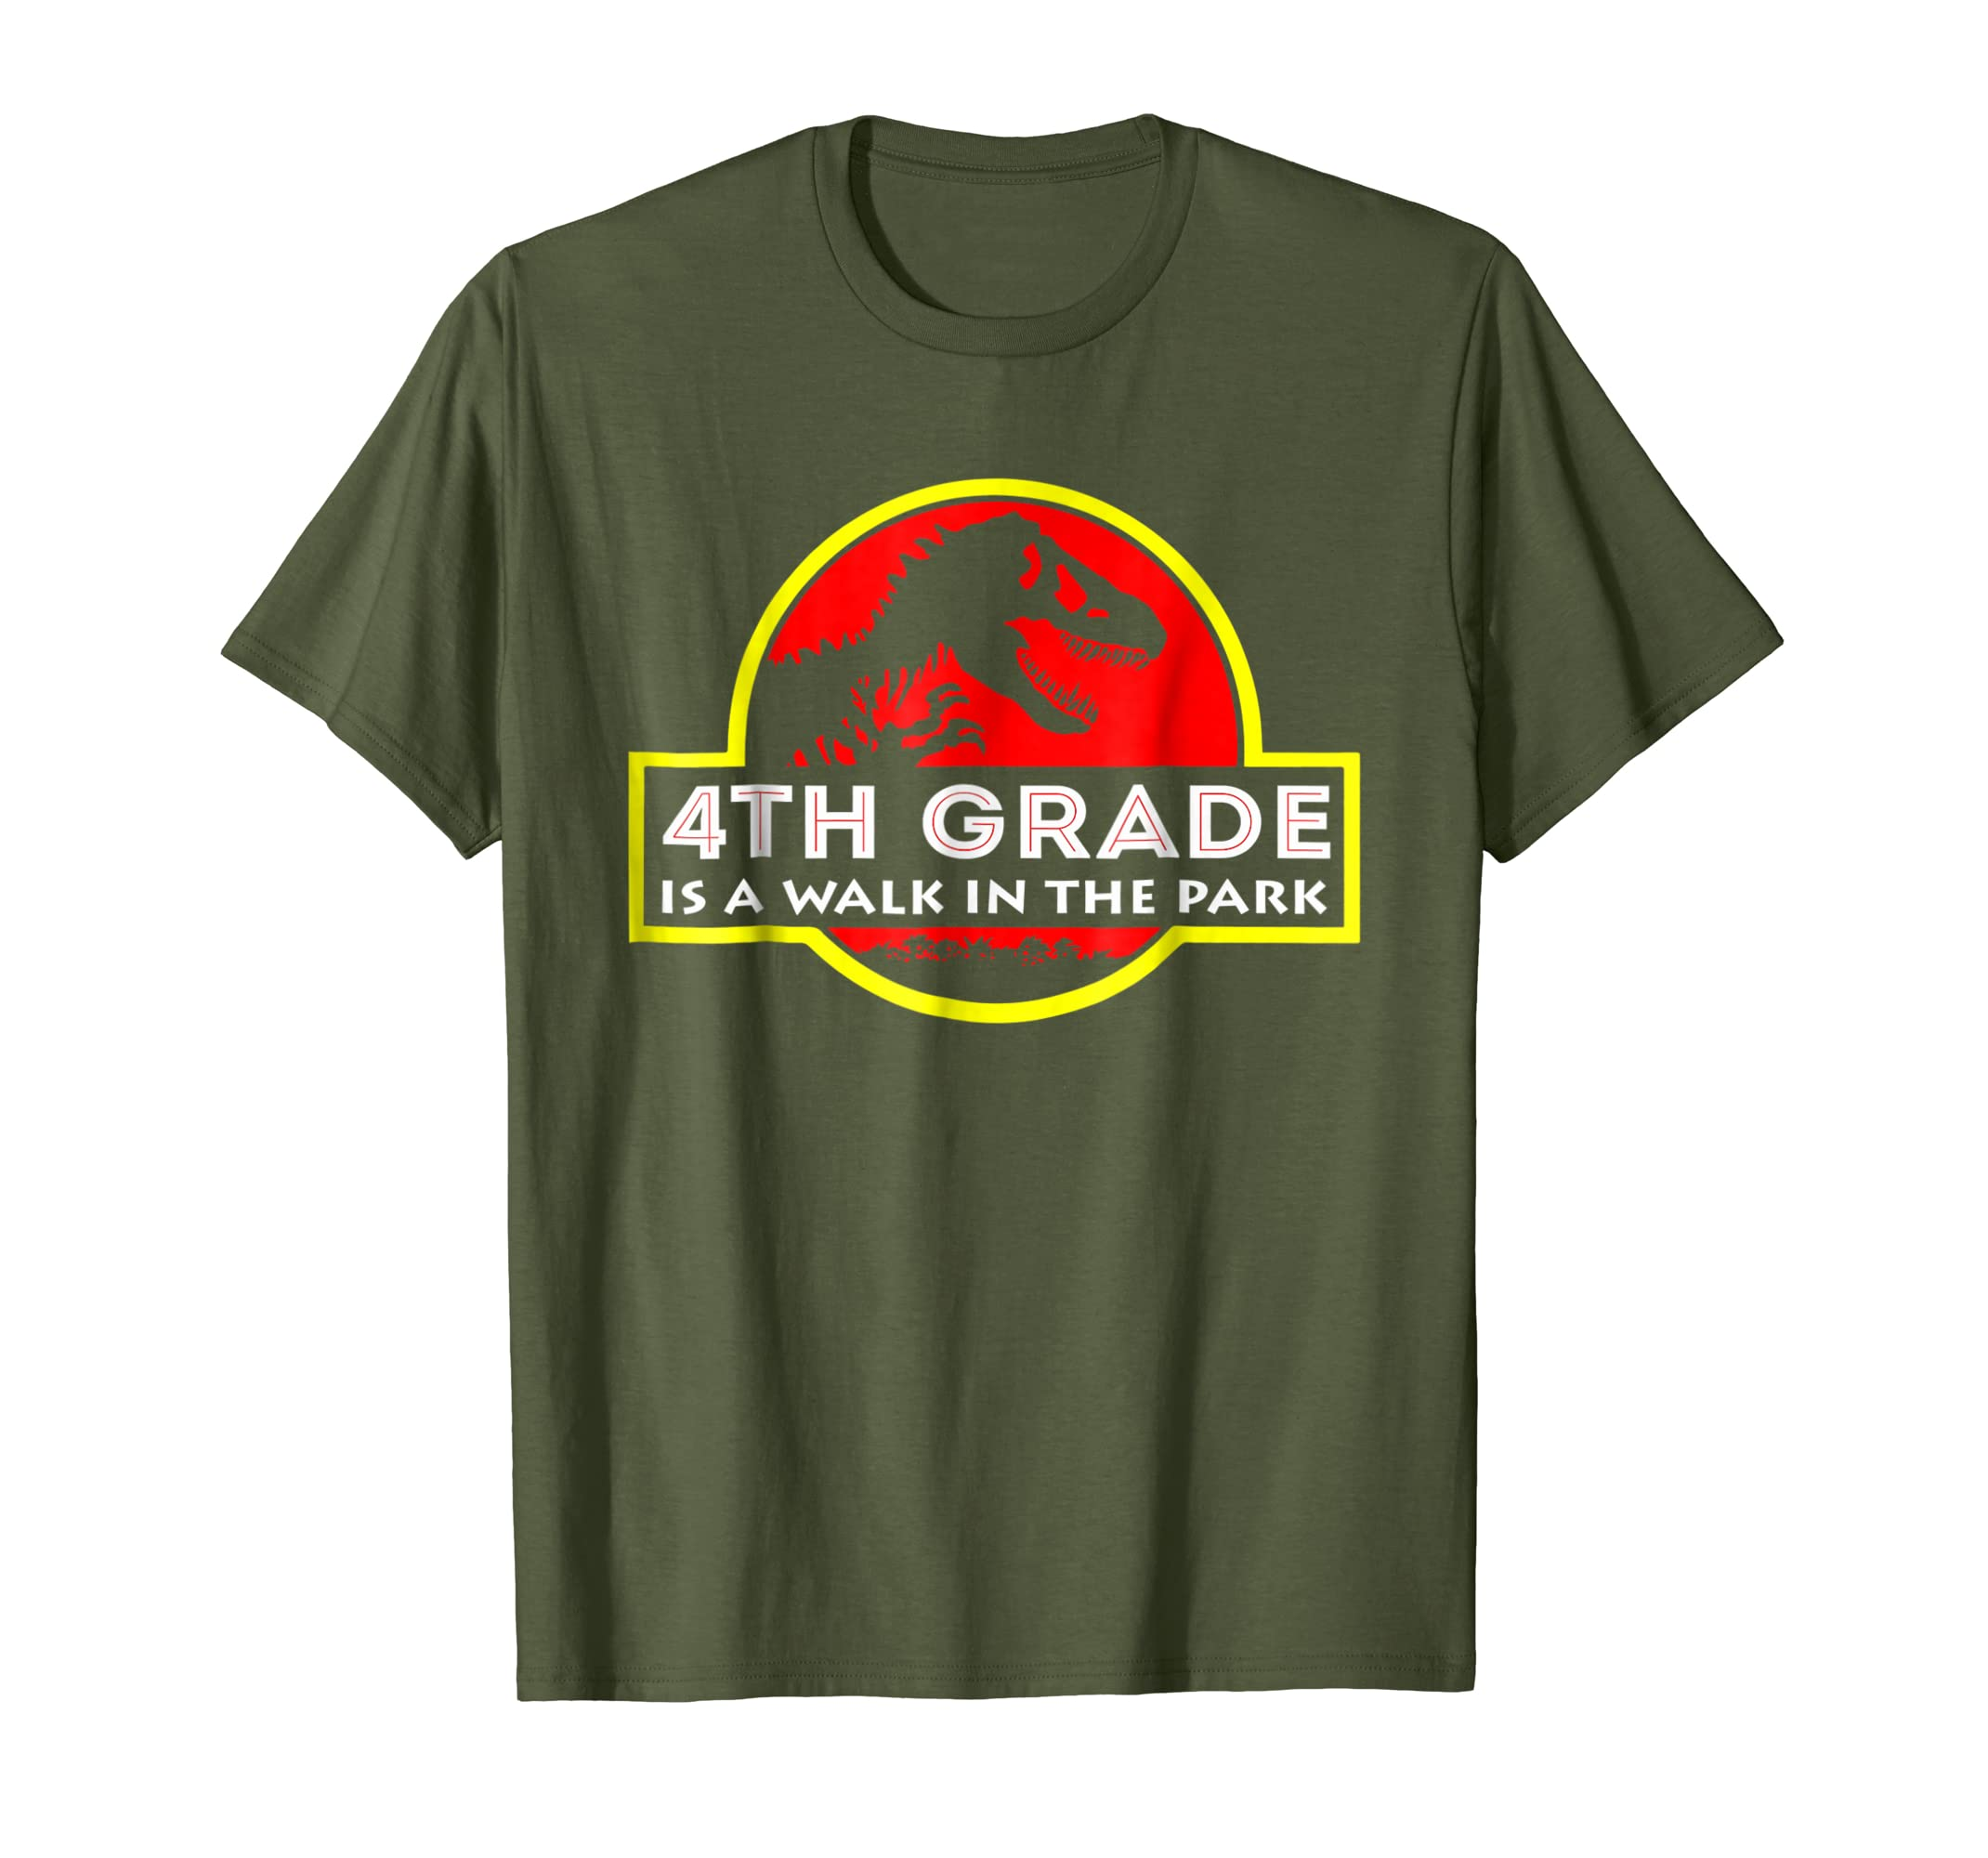 4th Grade is a walk in the park funny T shirt-ln